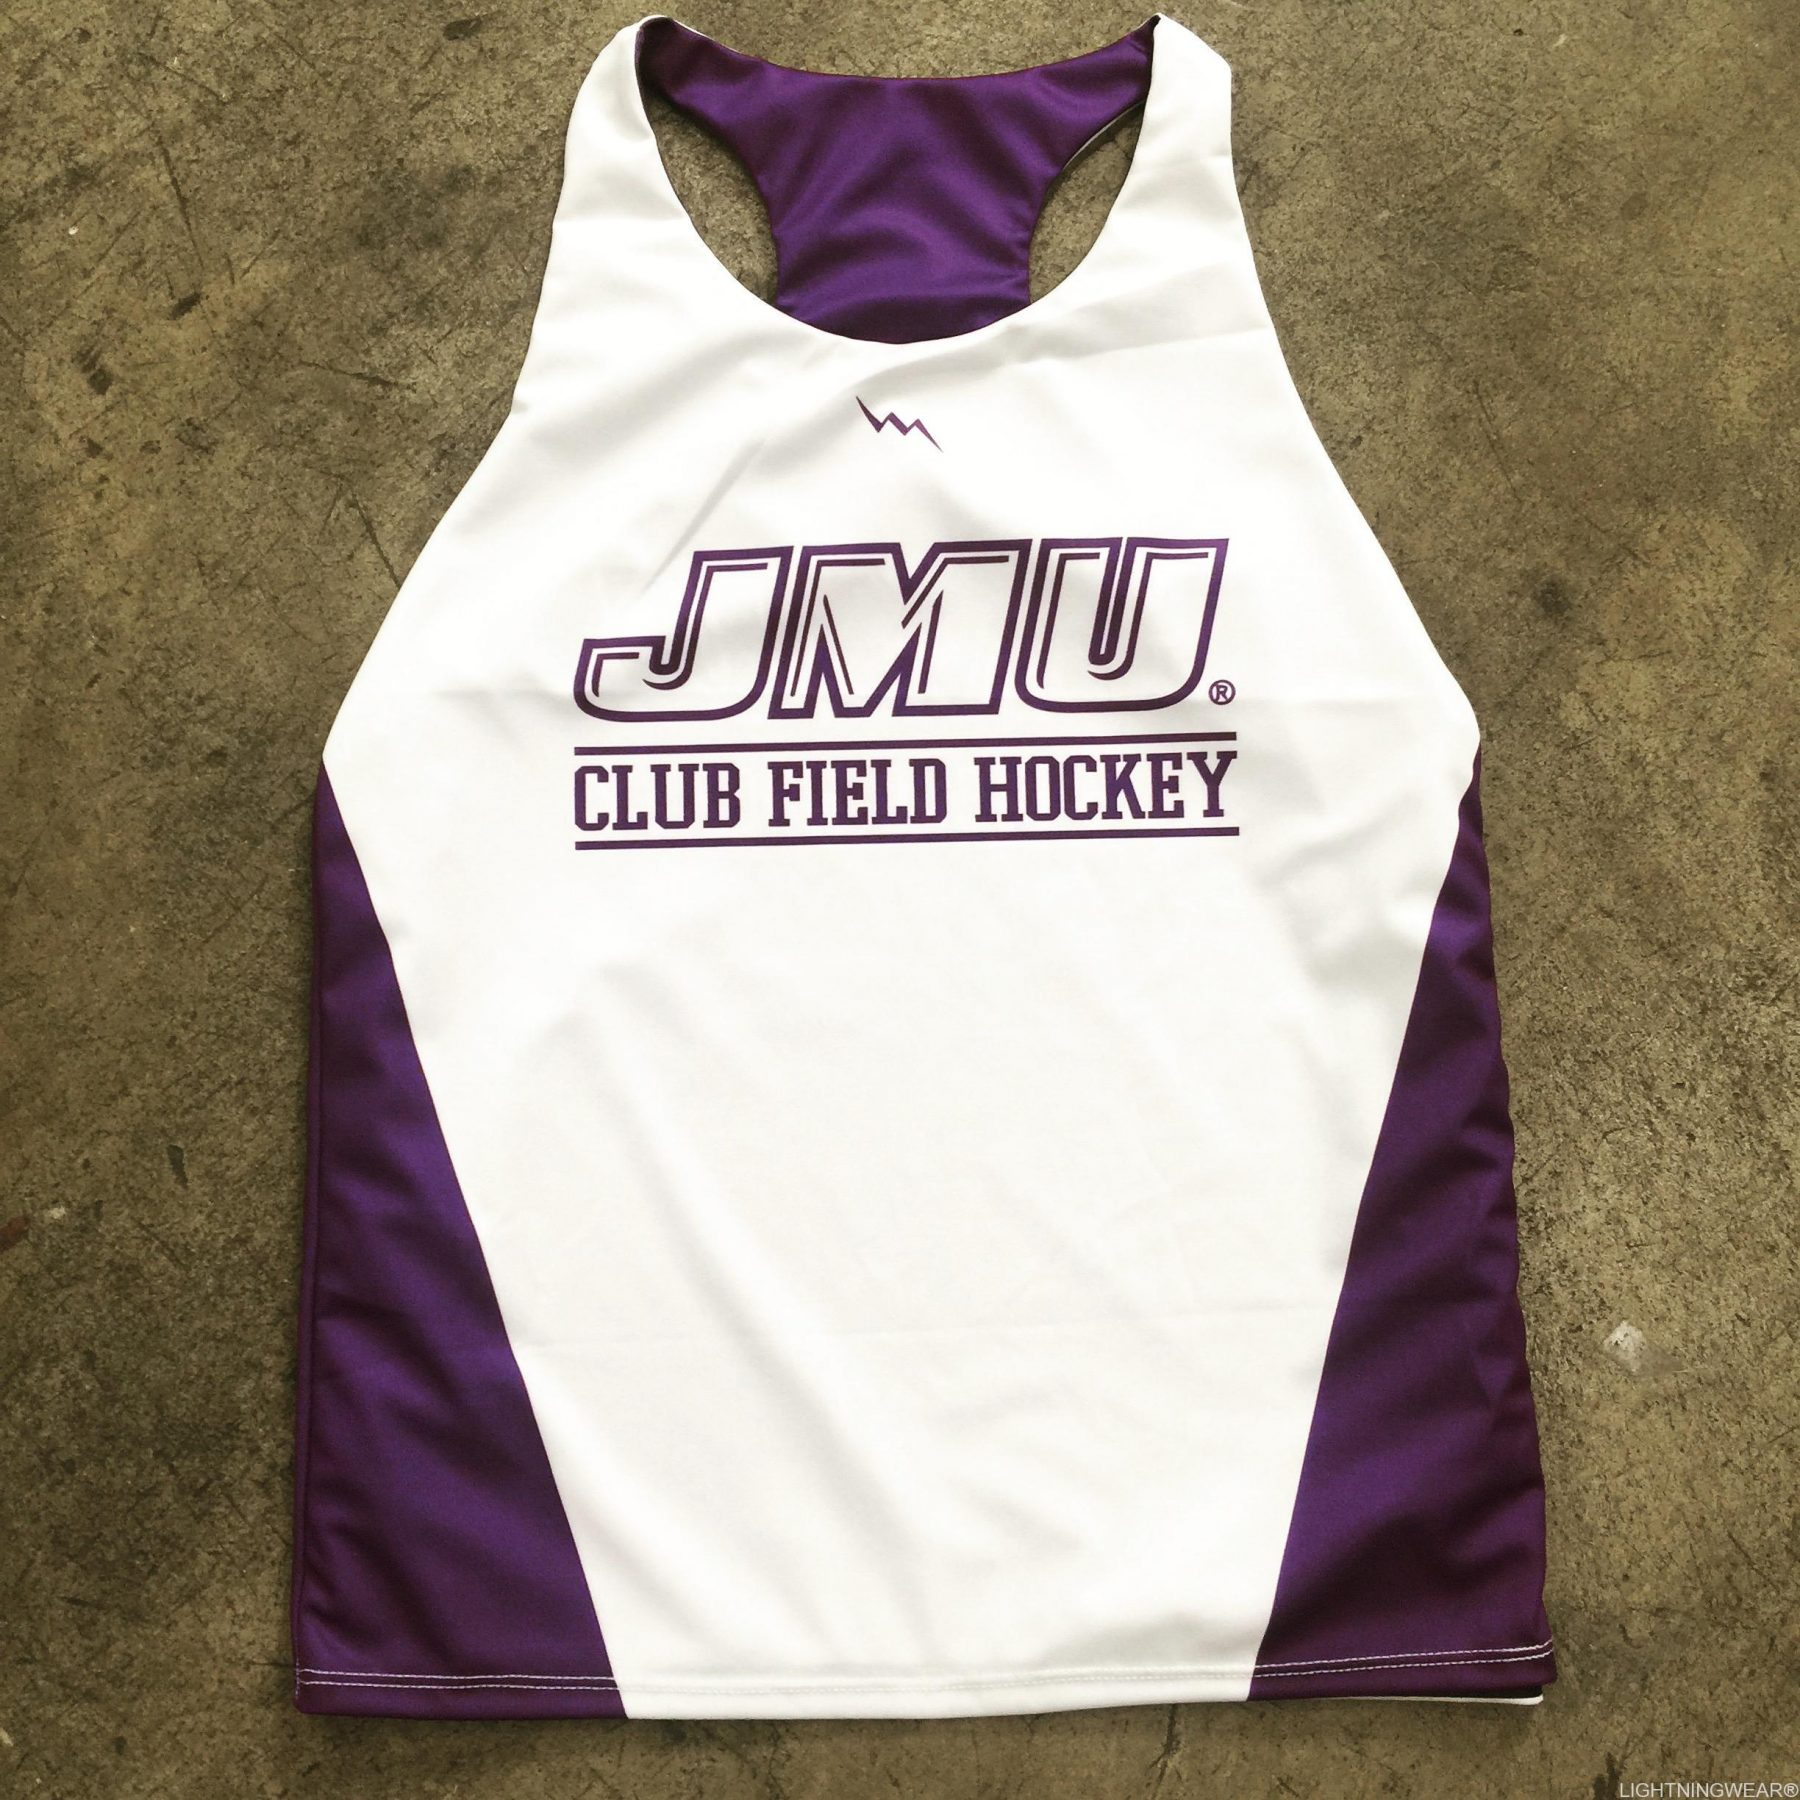 club-field-hockey-jerseys